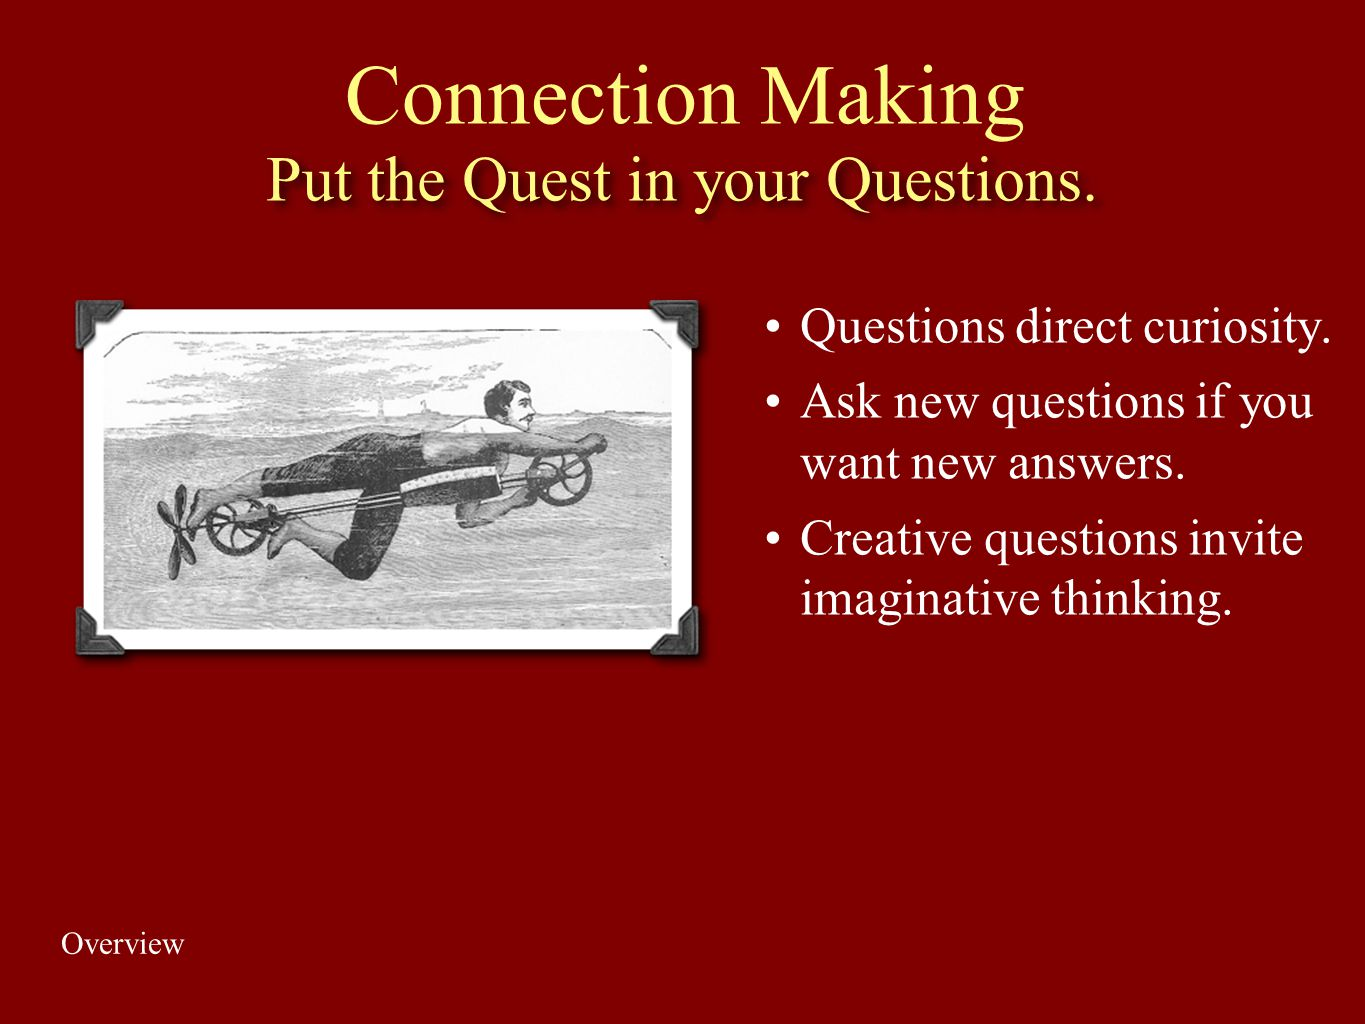 Put the Quest in your Questions. Questions direct curiosity. Ask new questions if you want new answers. Creative questions invite imaginative thinking